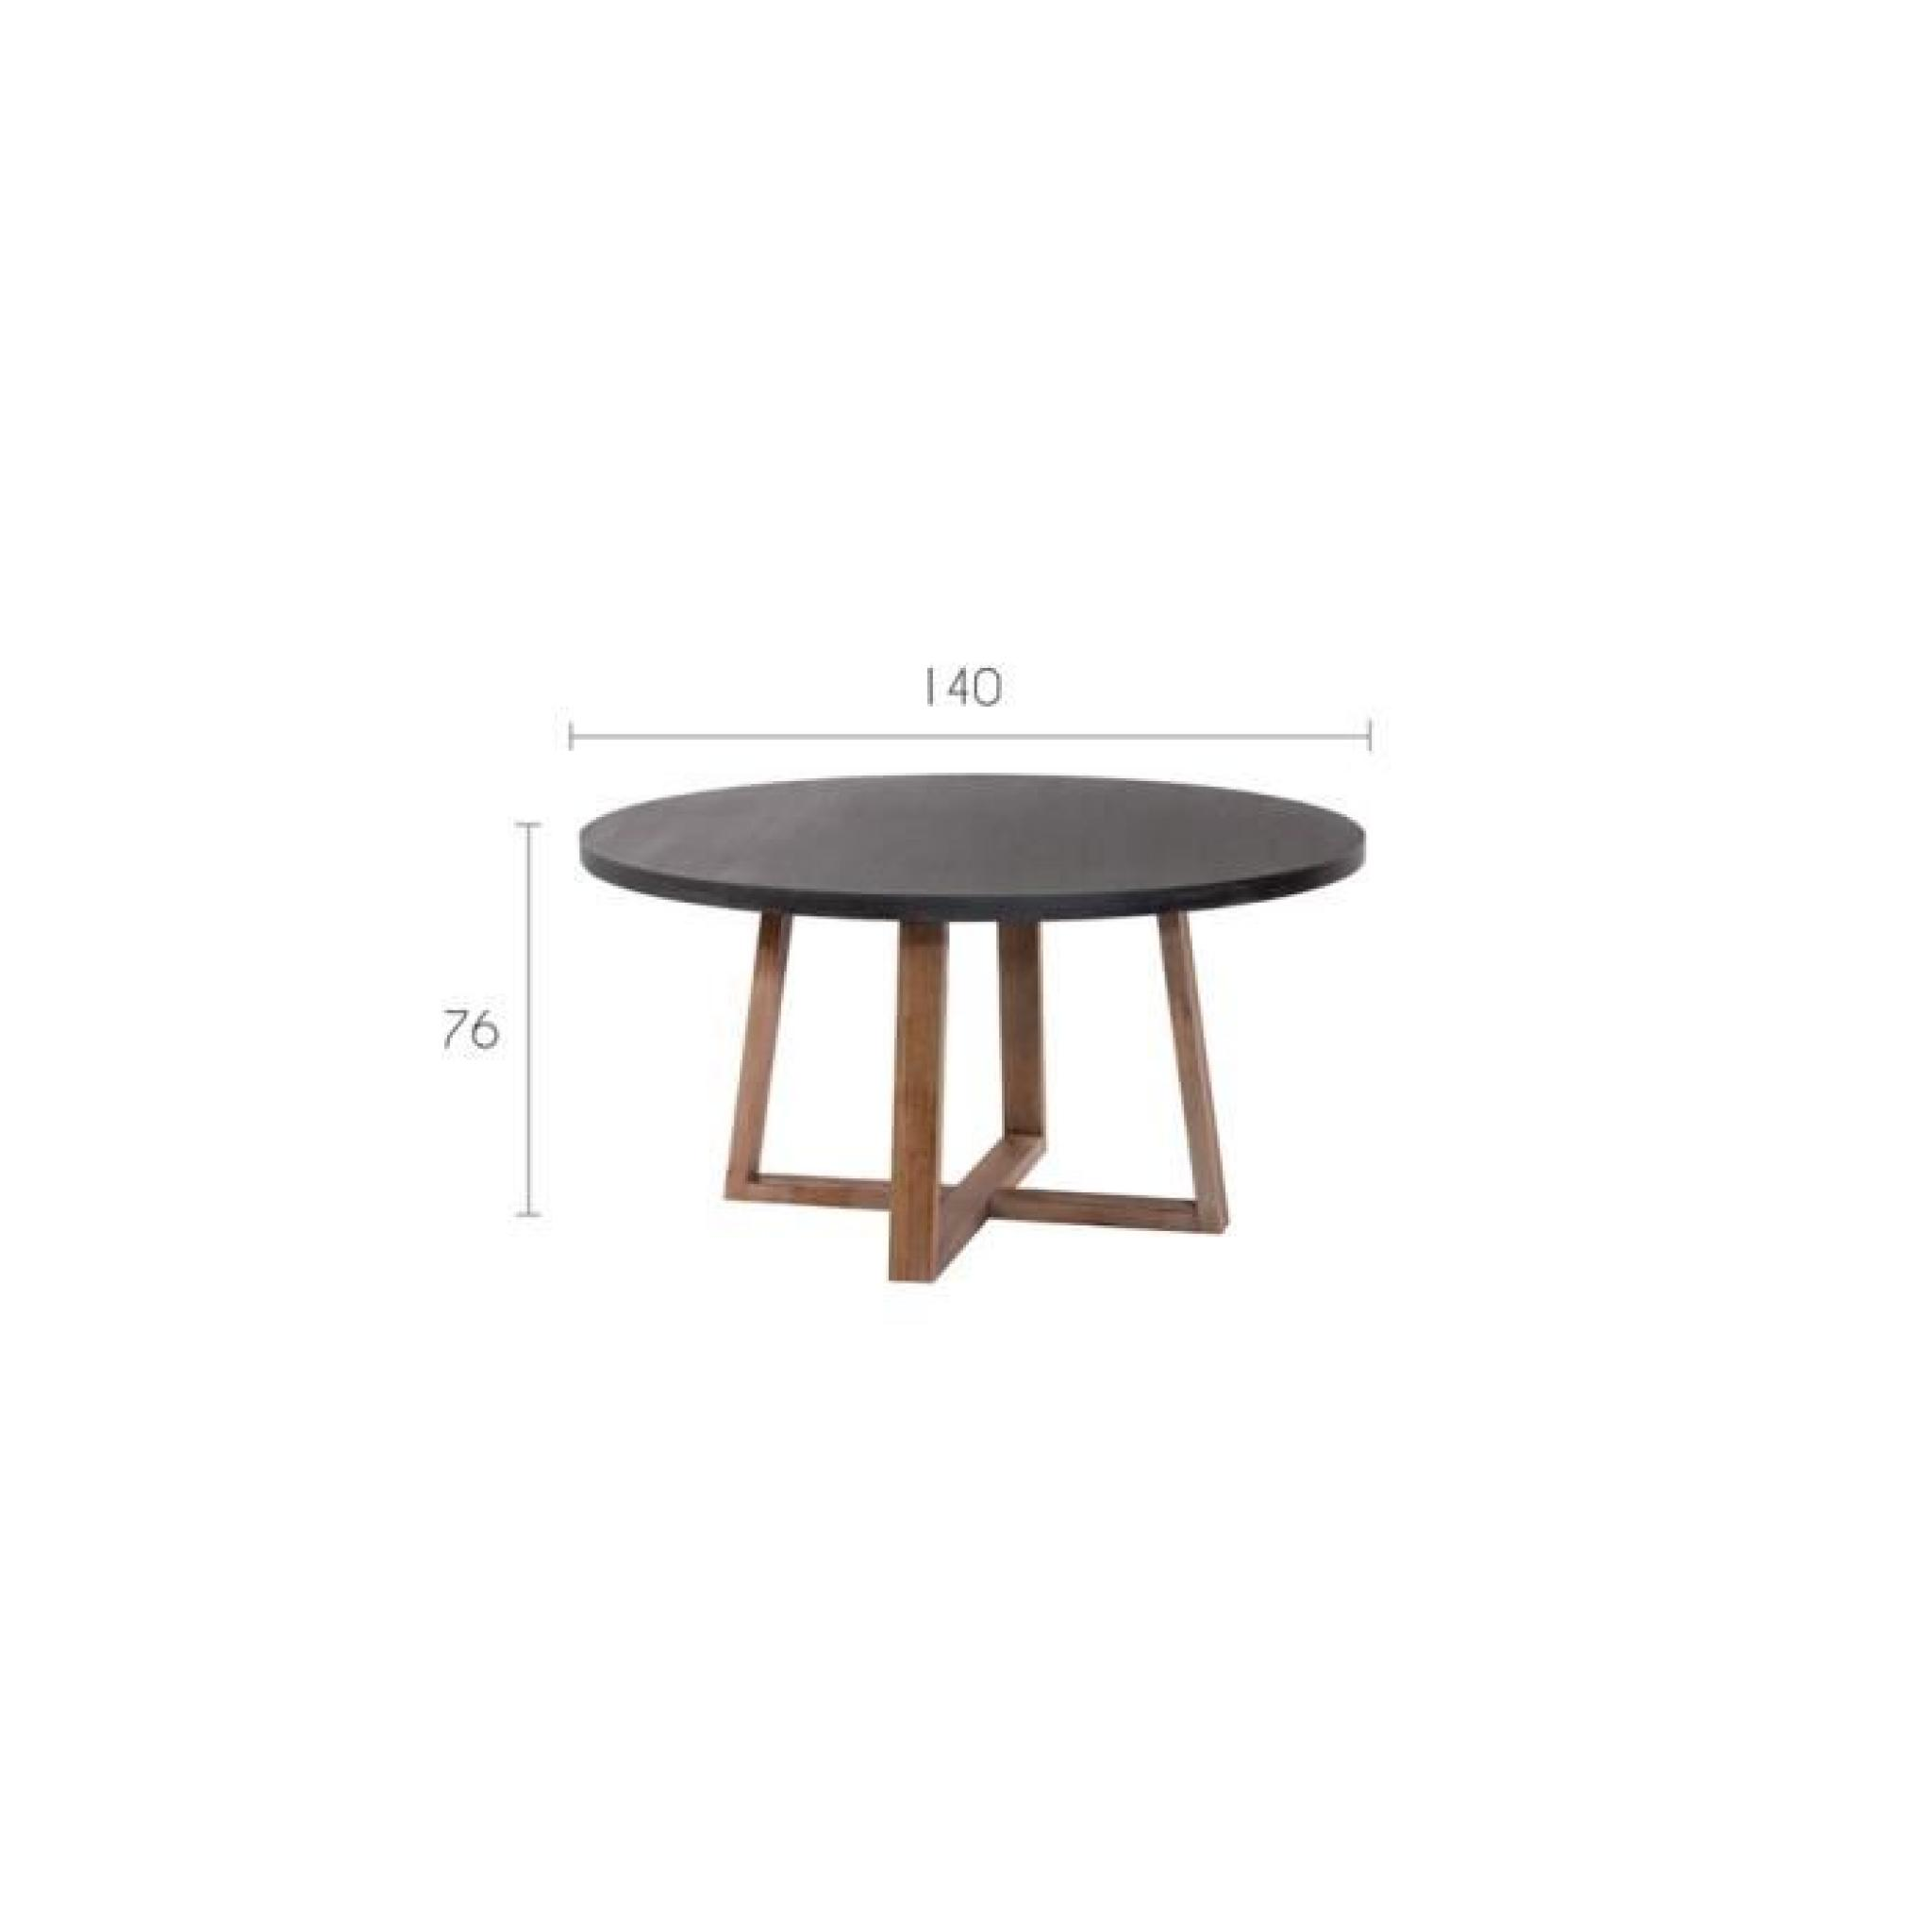 table ronde tambora 140 cm achat vente table salle a manger pas cher couleur et. Black Bedroom Furniture Sets. Home Design Ideas